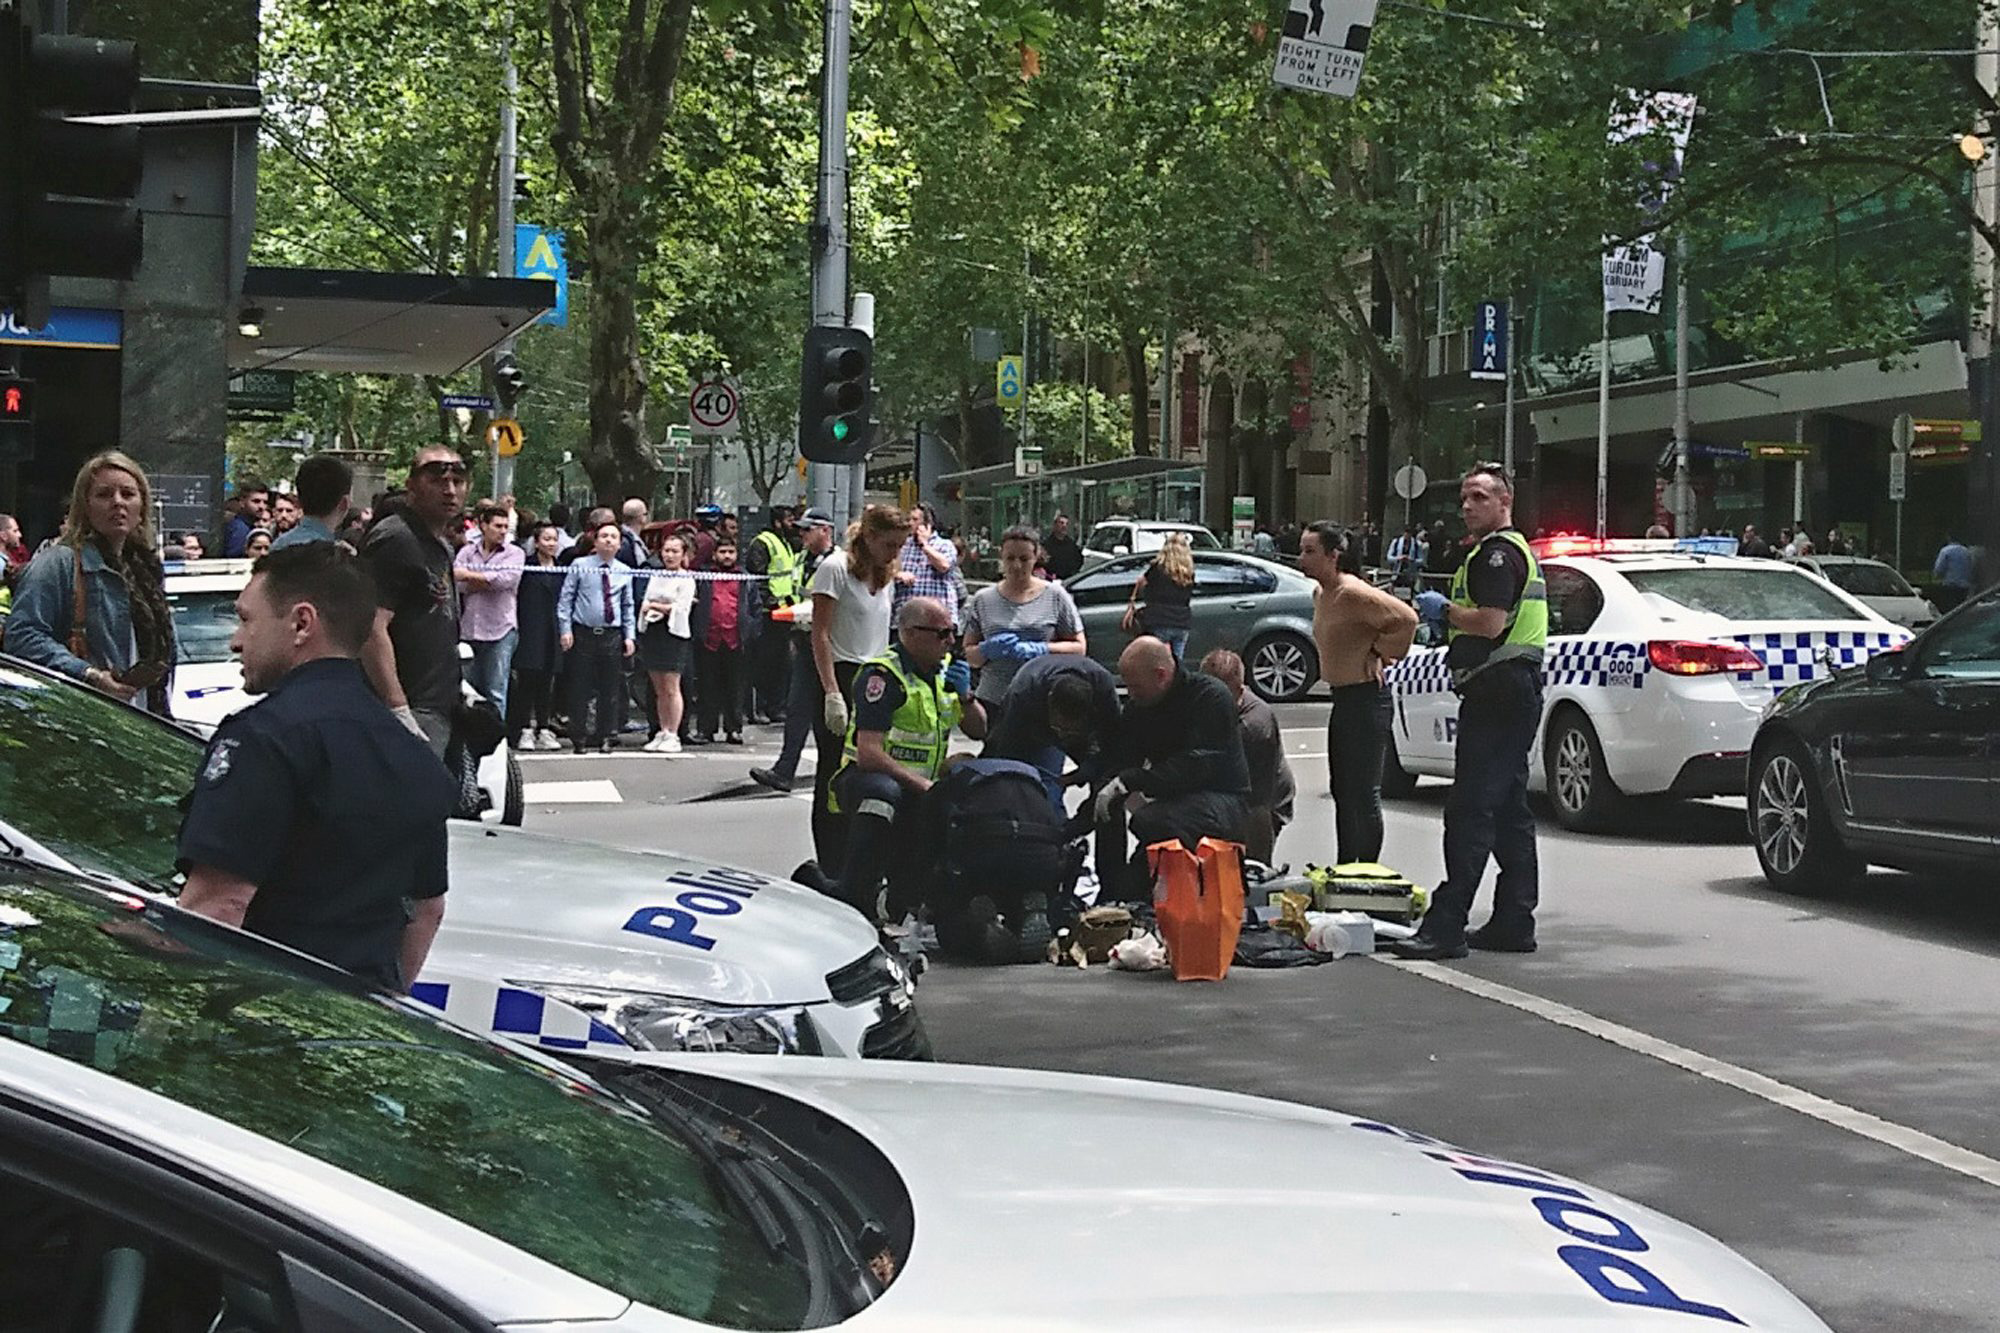 Car crashes into crowd in Melbourne, Australia